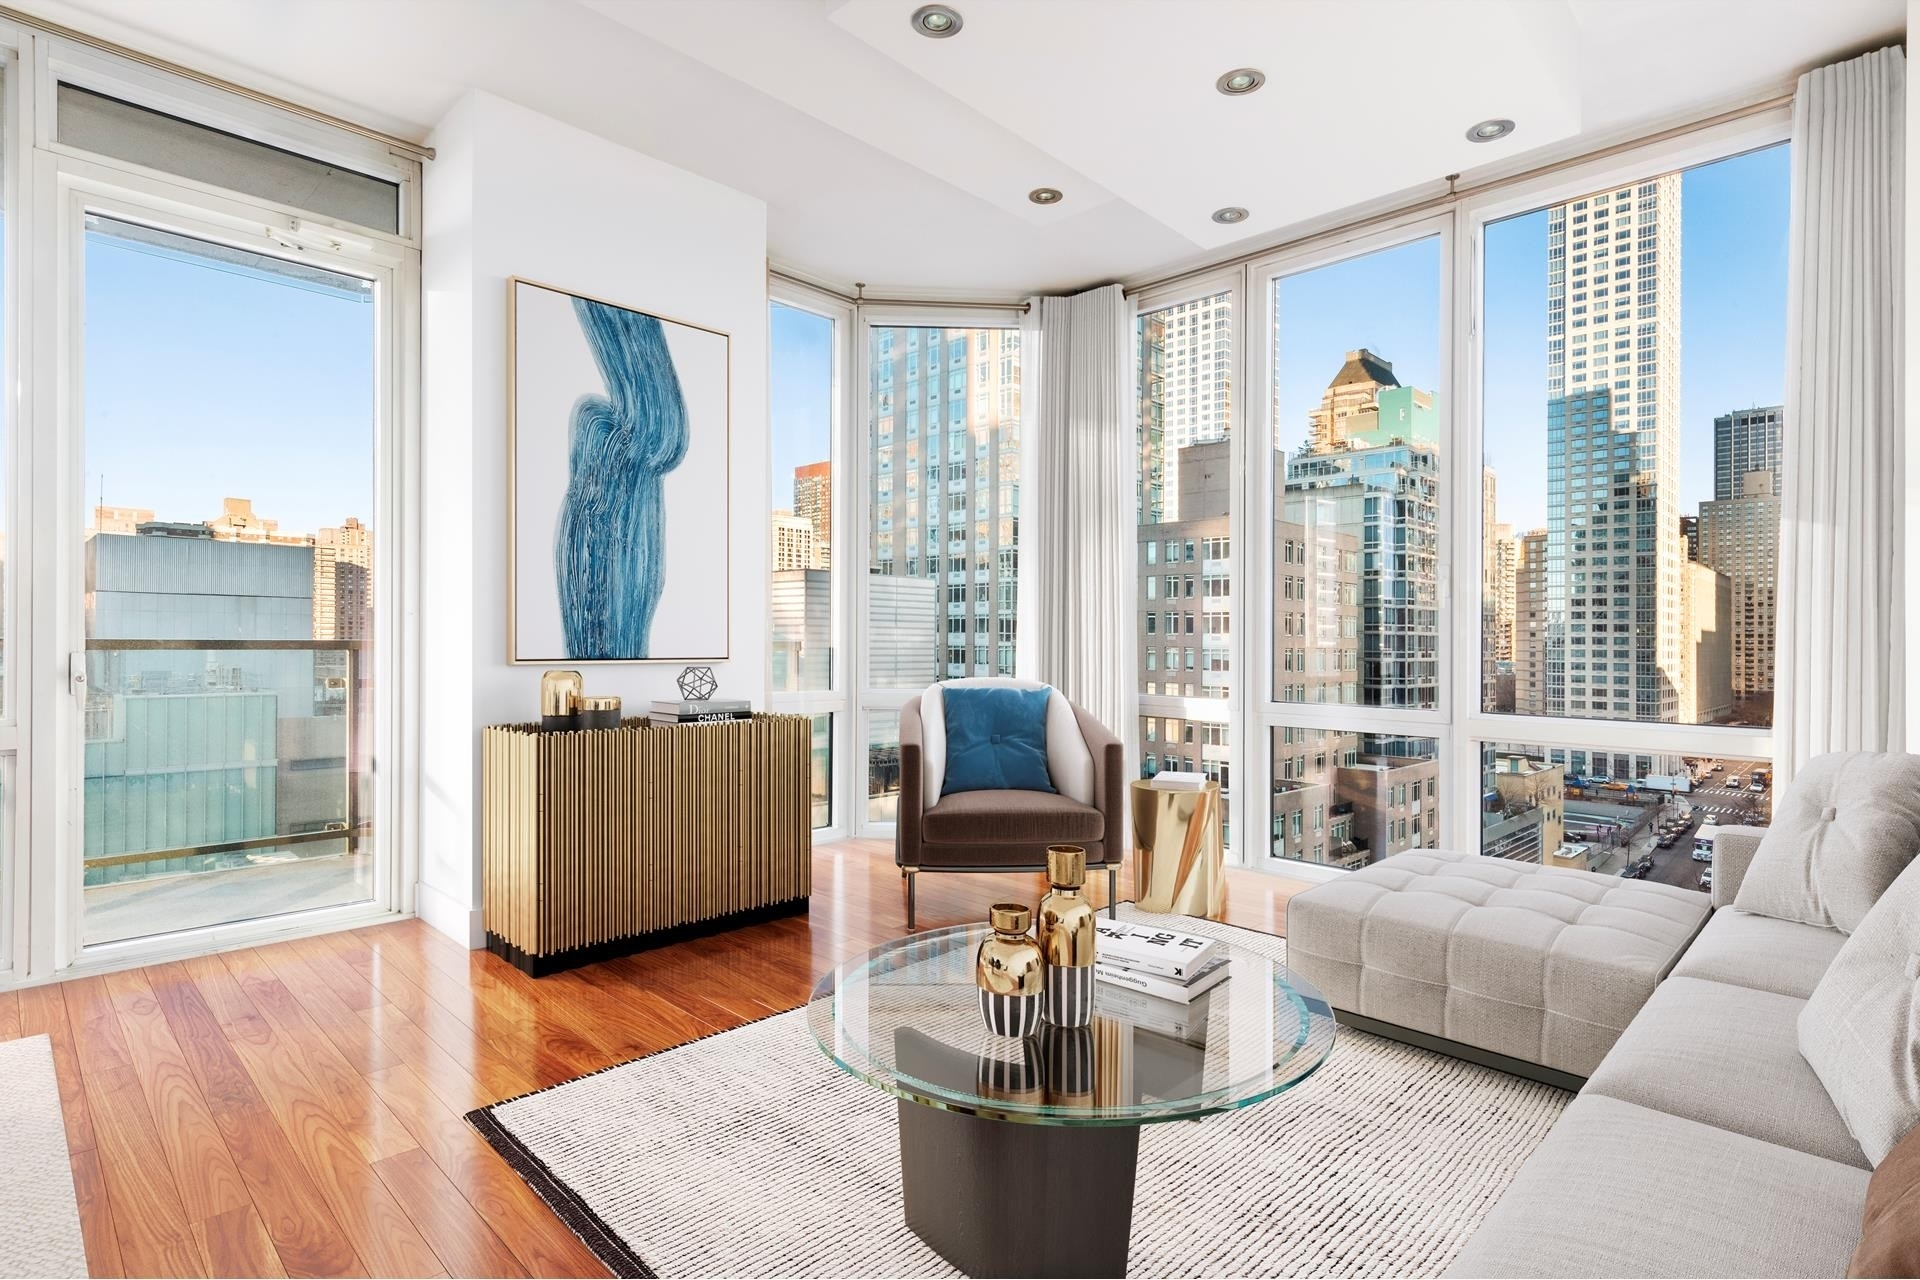 Condominium at 10 West End Avenue, 16A New York